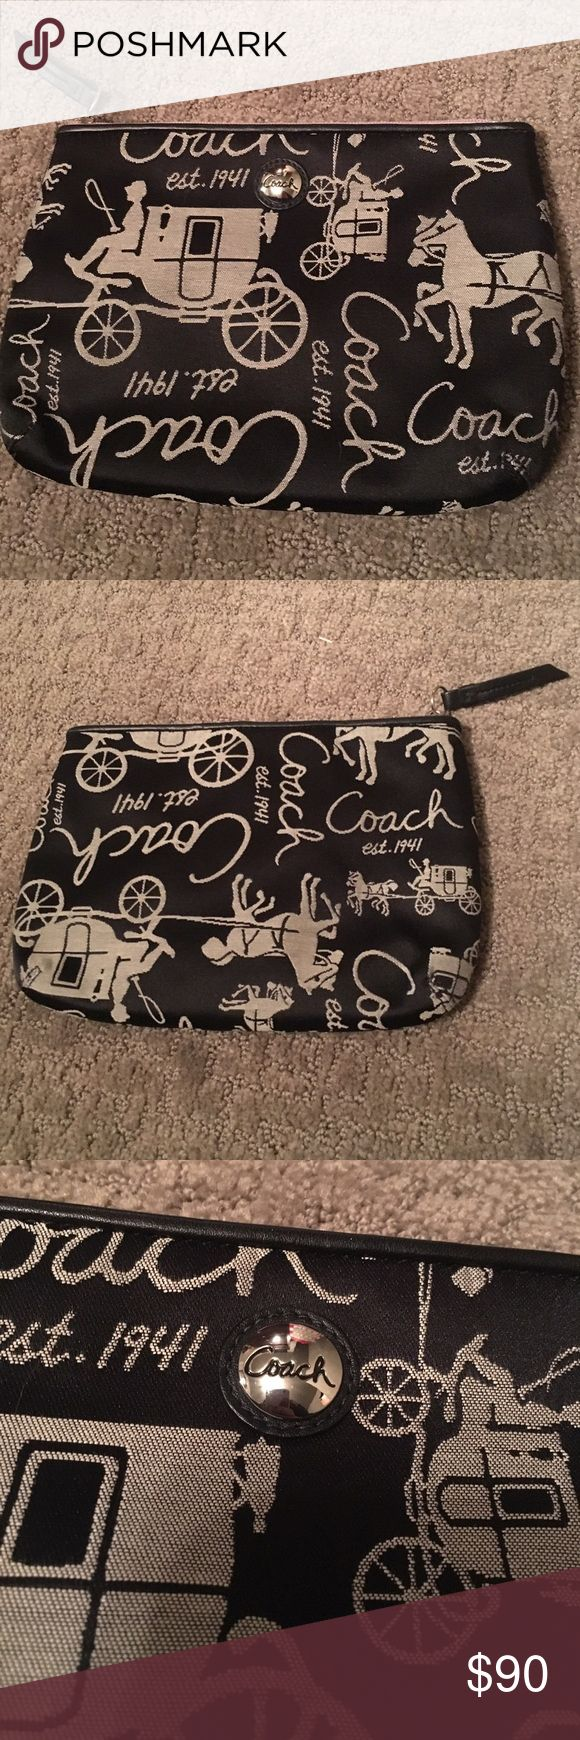 Coach clutch Gorgeous black coach clutch/makeup bag with carriages on it. It is purple on the inside and is divided into two compartments. It's NWOT, I got it as a gift and never used it. Coach Bags Clutches & Wristlets